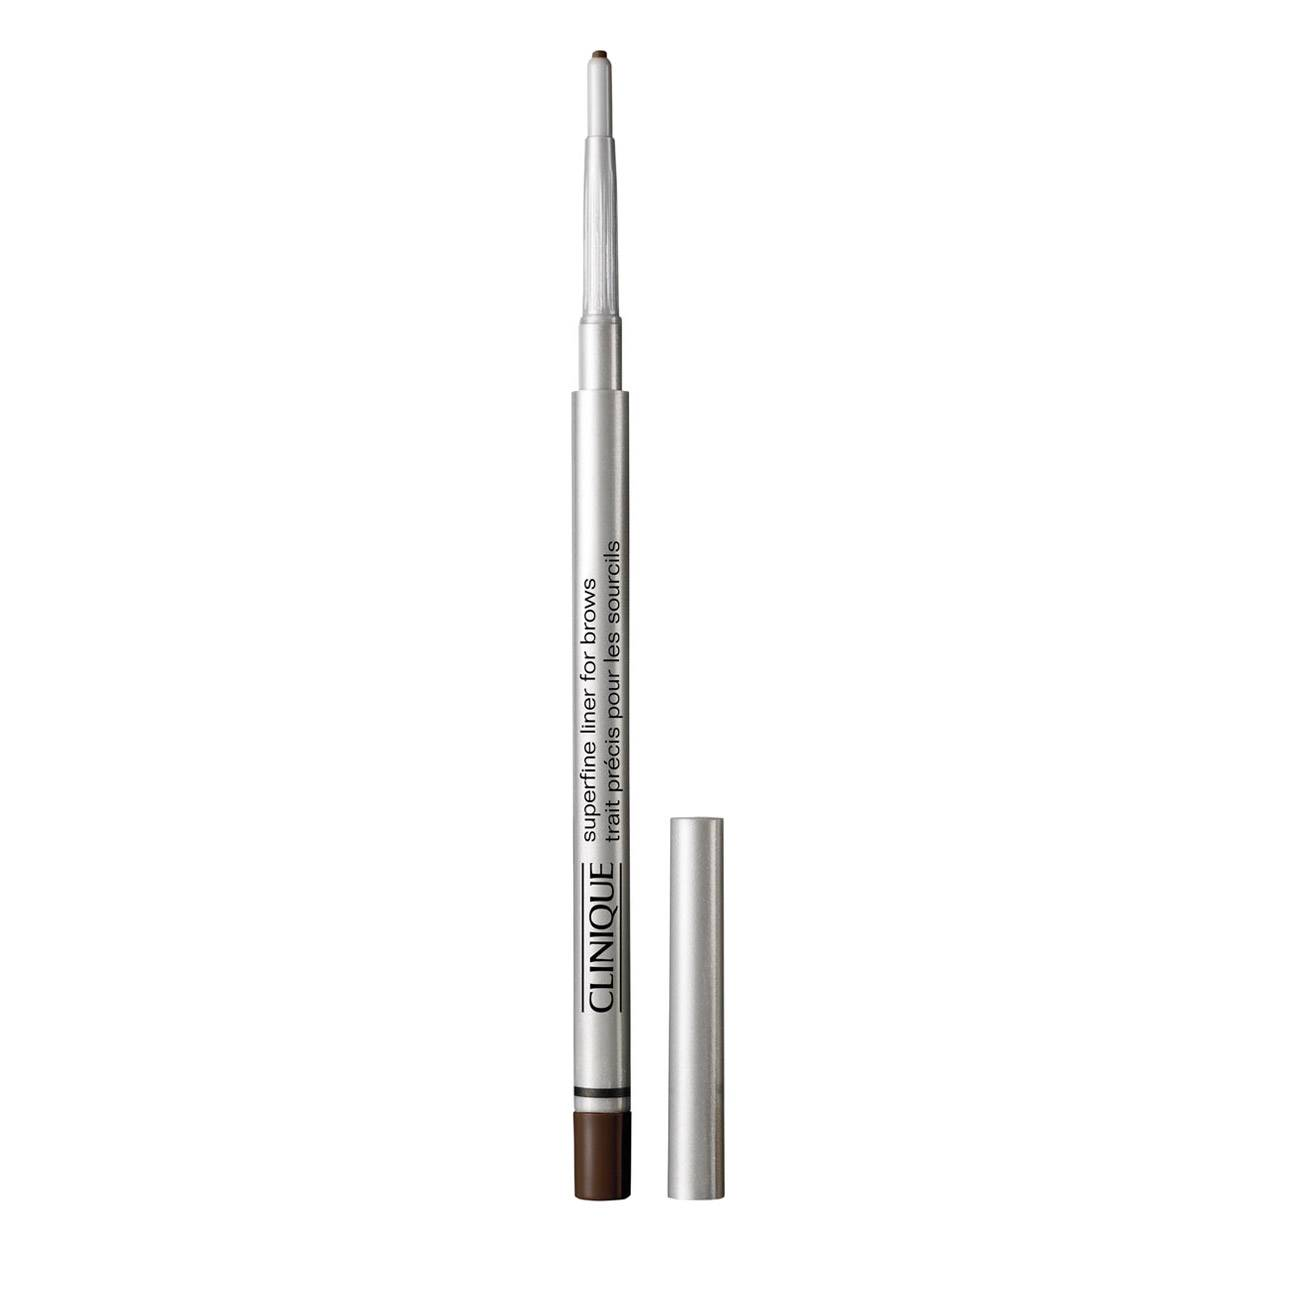 SUPERFINE LINER FOR BROWS 02 0.8gr imagine produs